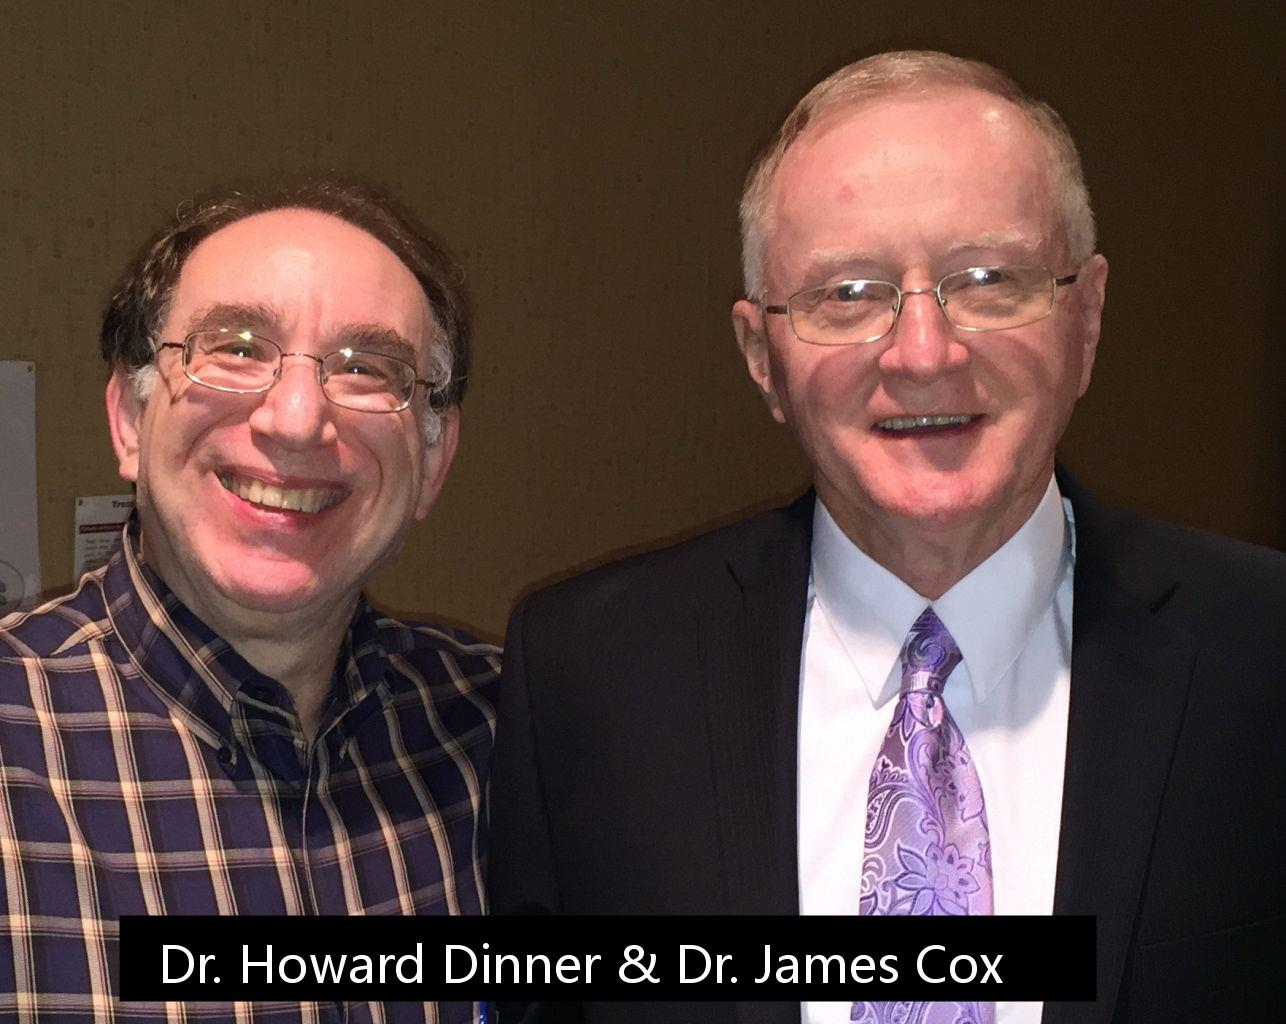 Dr. Howard Dinner, Plantation, FL and Dr. James Cox, Ft. Wayne, IN founder and developer of Cox Flexion Distraction Spinal Disc Decompression Therapy